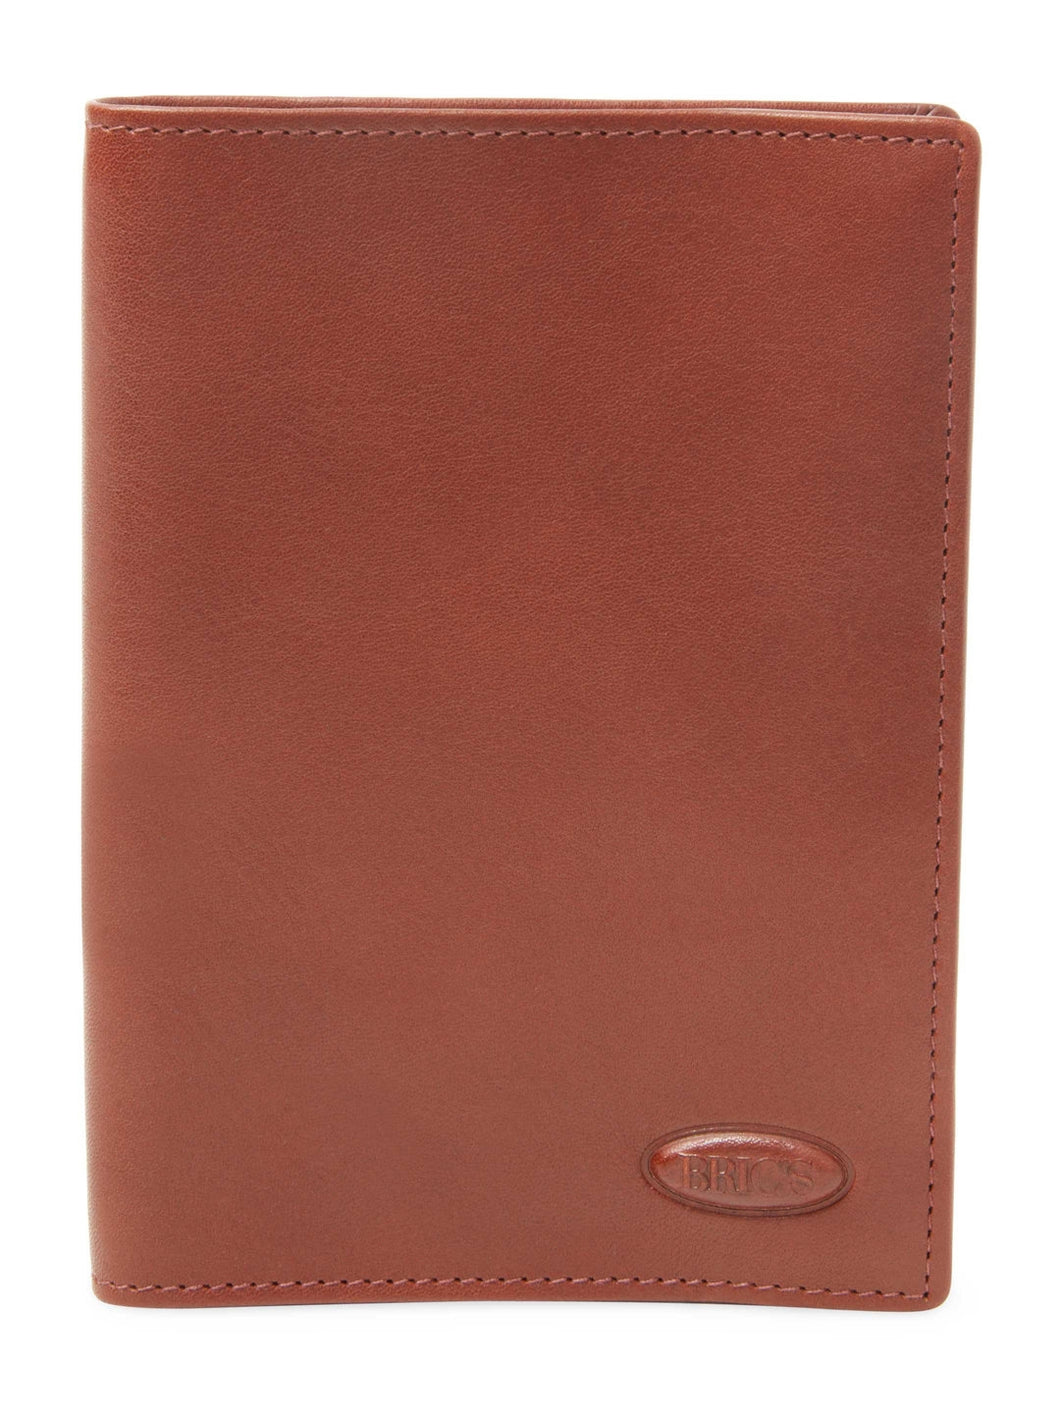 Bric's - Monte Rosa - Leather Passport & Credit Card Case